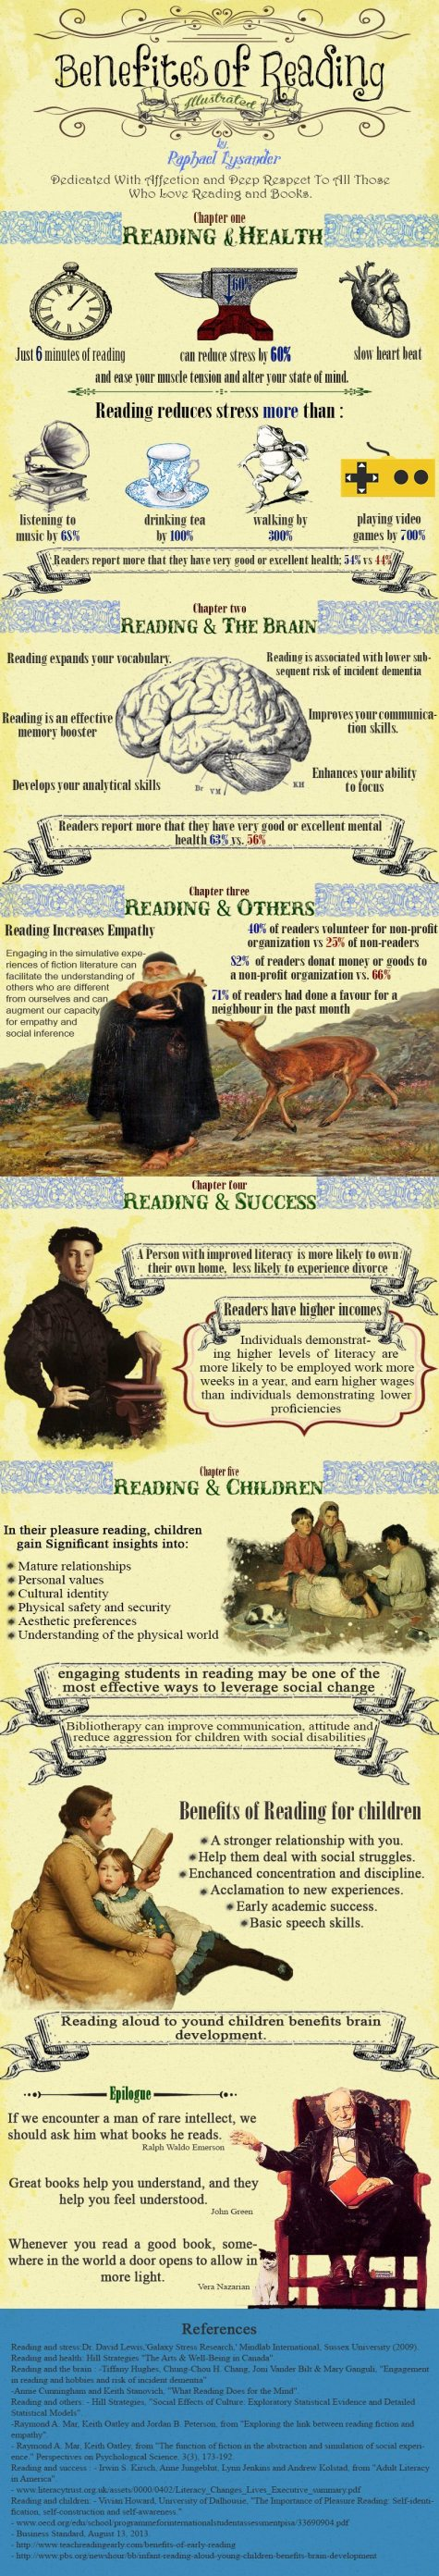 Reading-makes-us-better-infographic